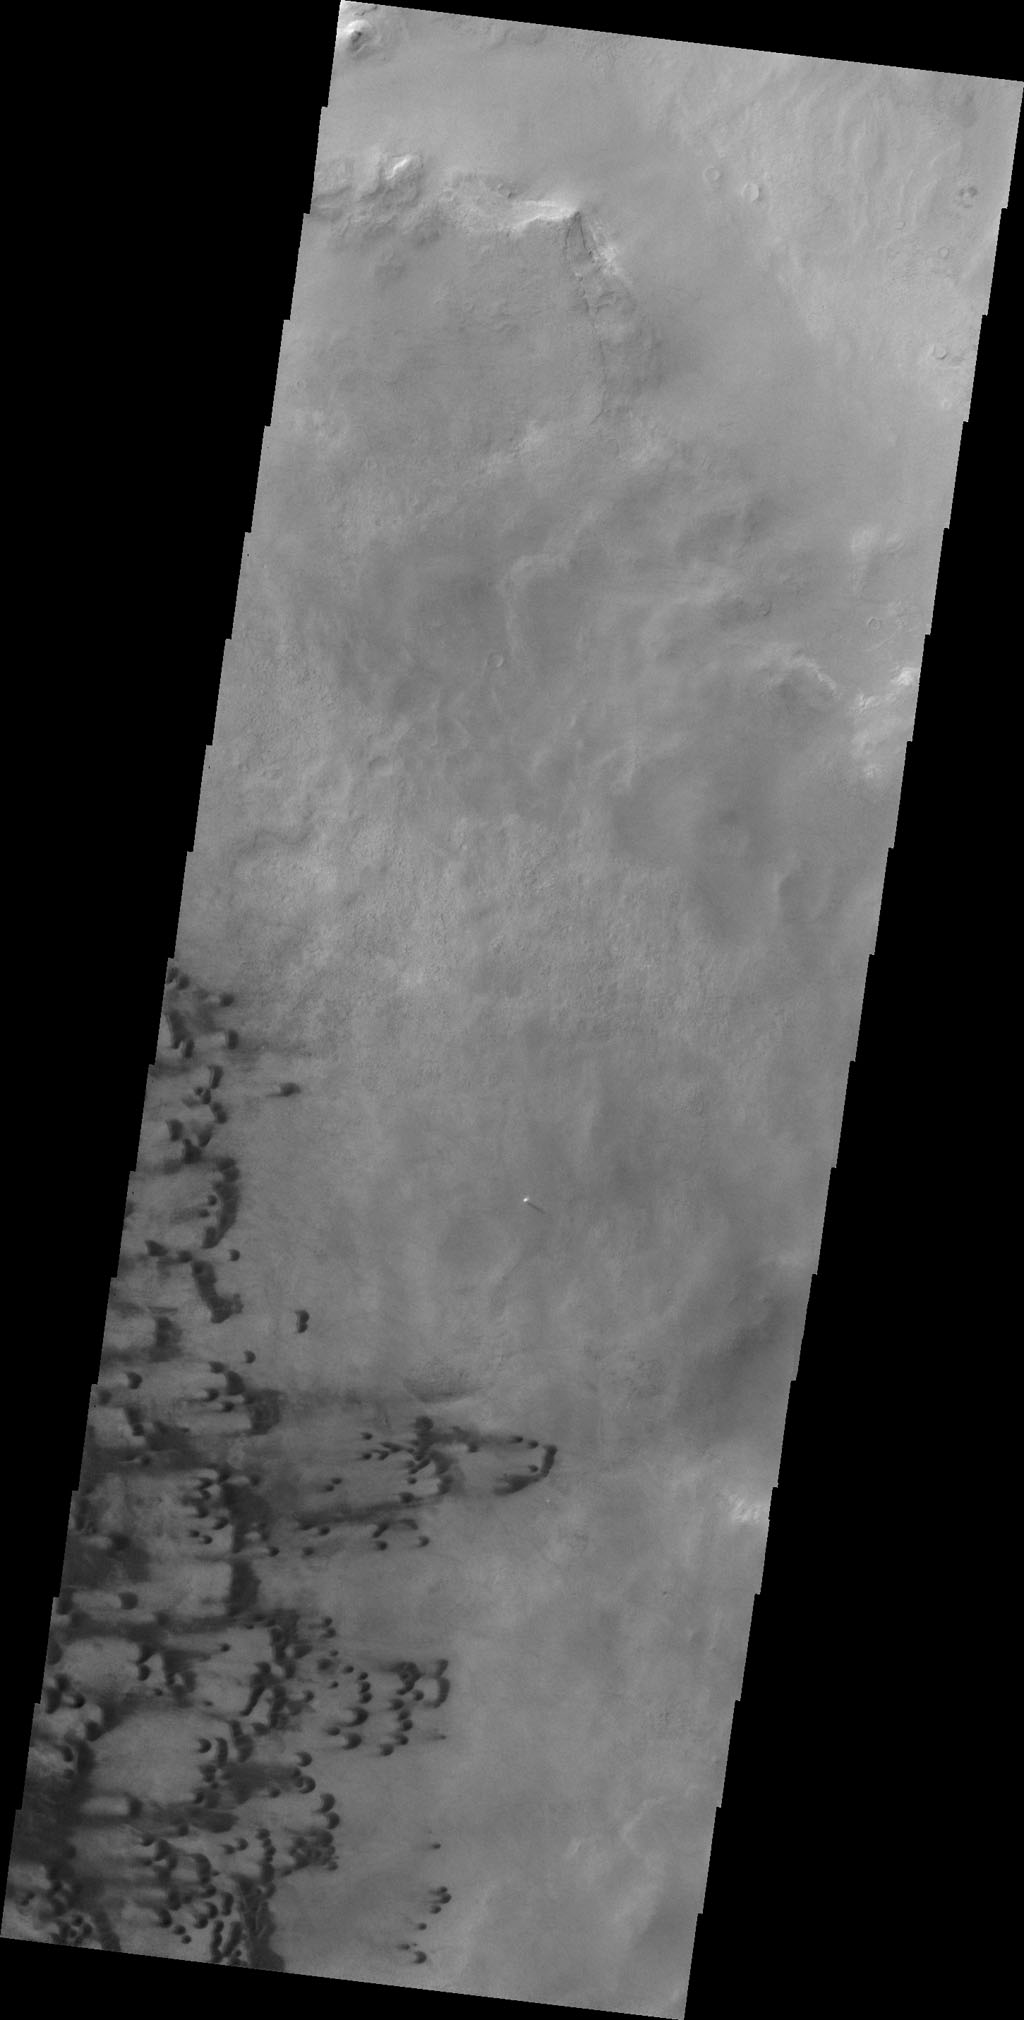 Small dunes are located on the floor of Darwin Crater as shown in this image from NASA's 2001 Mars Odyssey spacecraft.